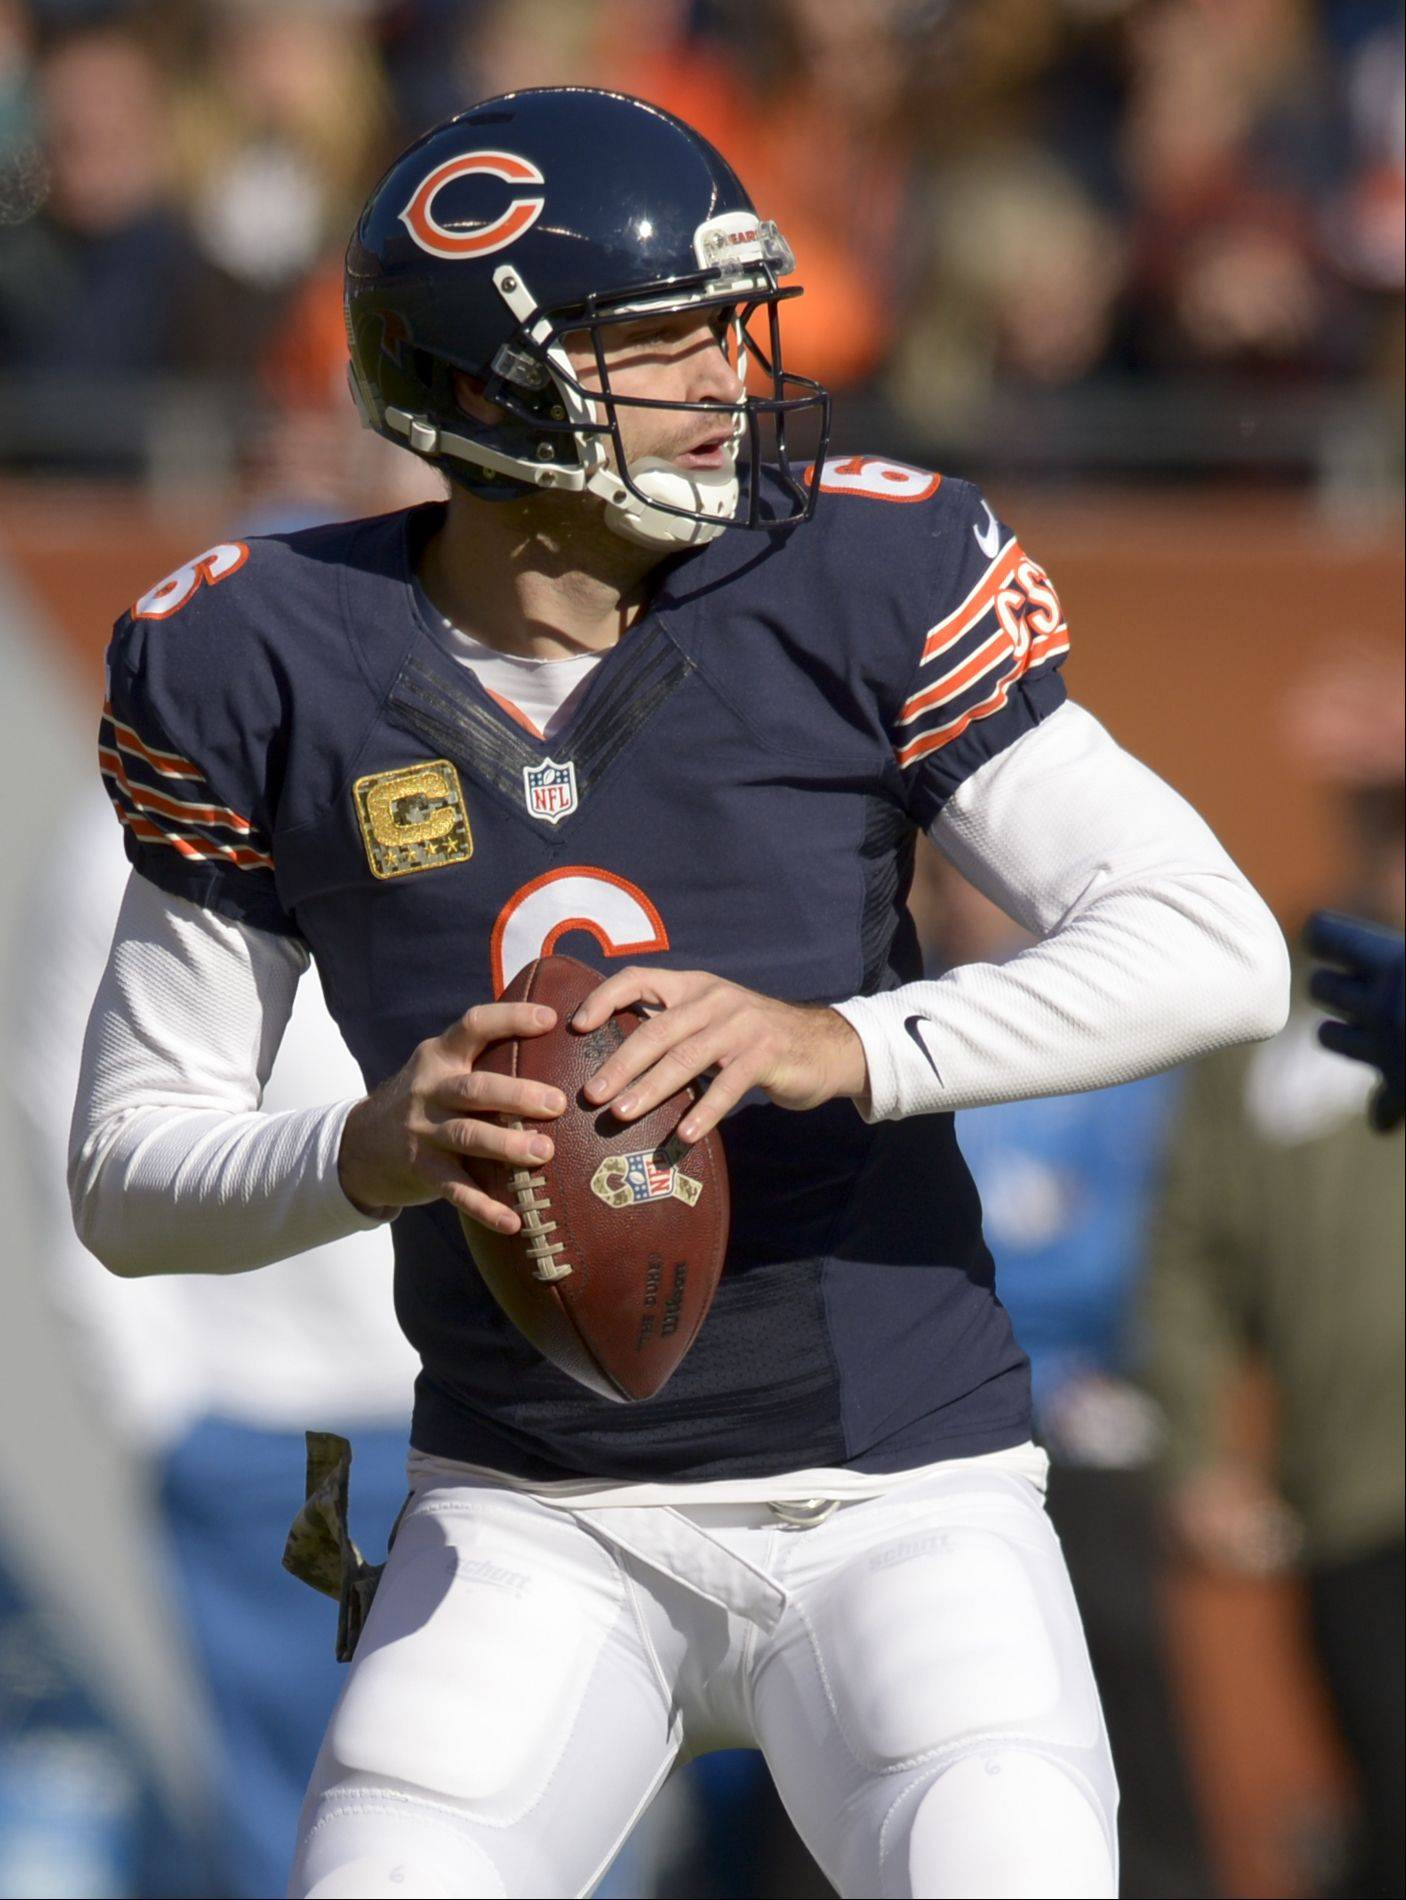 Even in Bears' loss, Trestman backs Cutler